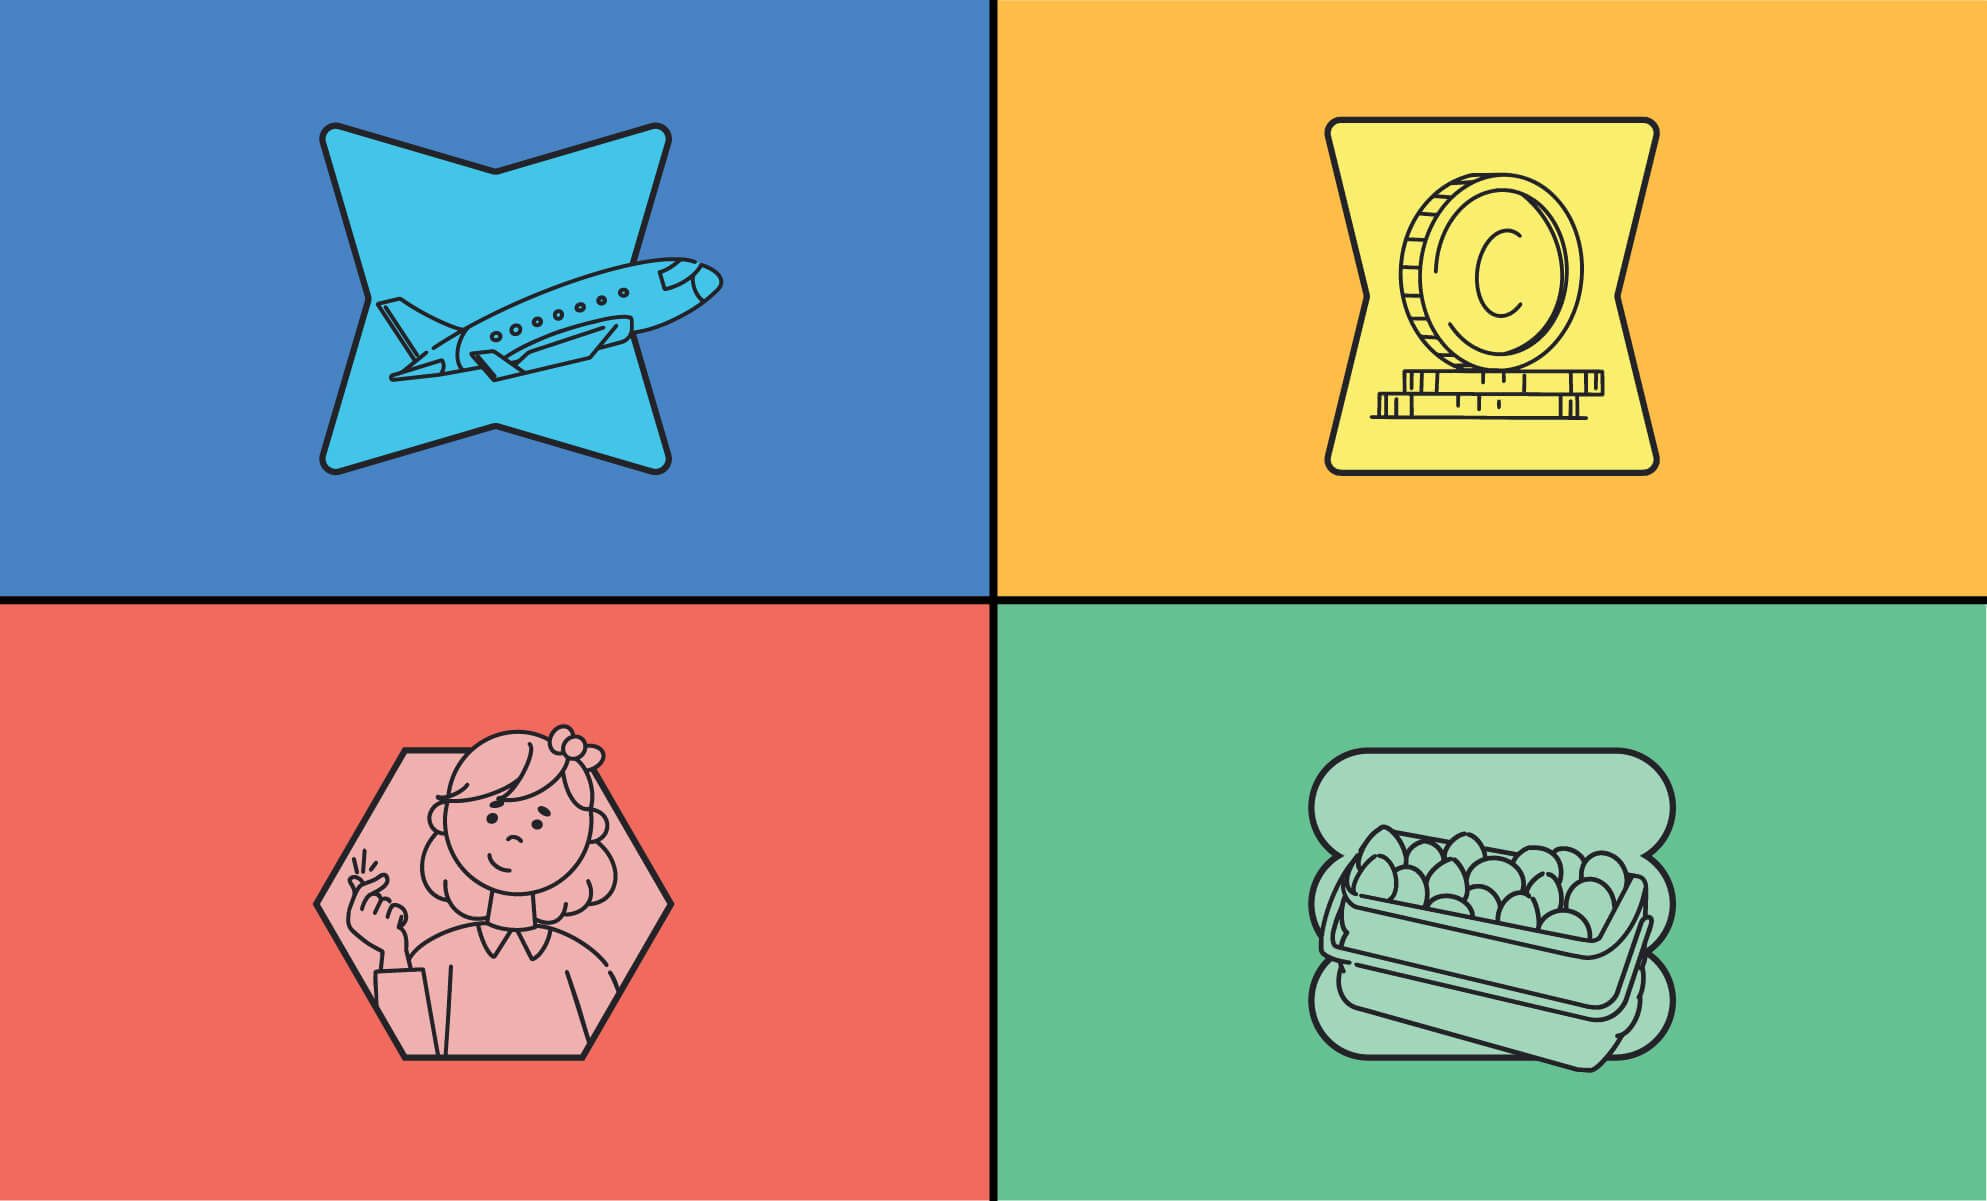 """Illustrations of airplane travel, coins (cost), girl snapping fingers (ease), and a dozen eggs (multiple options), as a header image for """"Making a case for multiple cloud services."""" Part of BrainStorm, Inc. blog post on Box vs. Dropbox, Google Drive, and Microsoft OneDrive (10/2021)"""